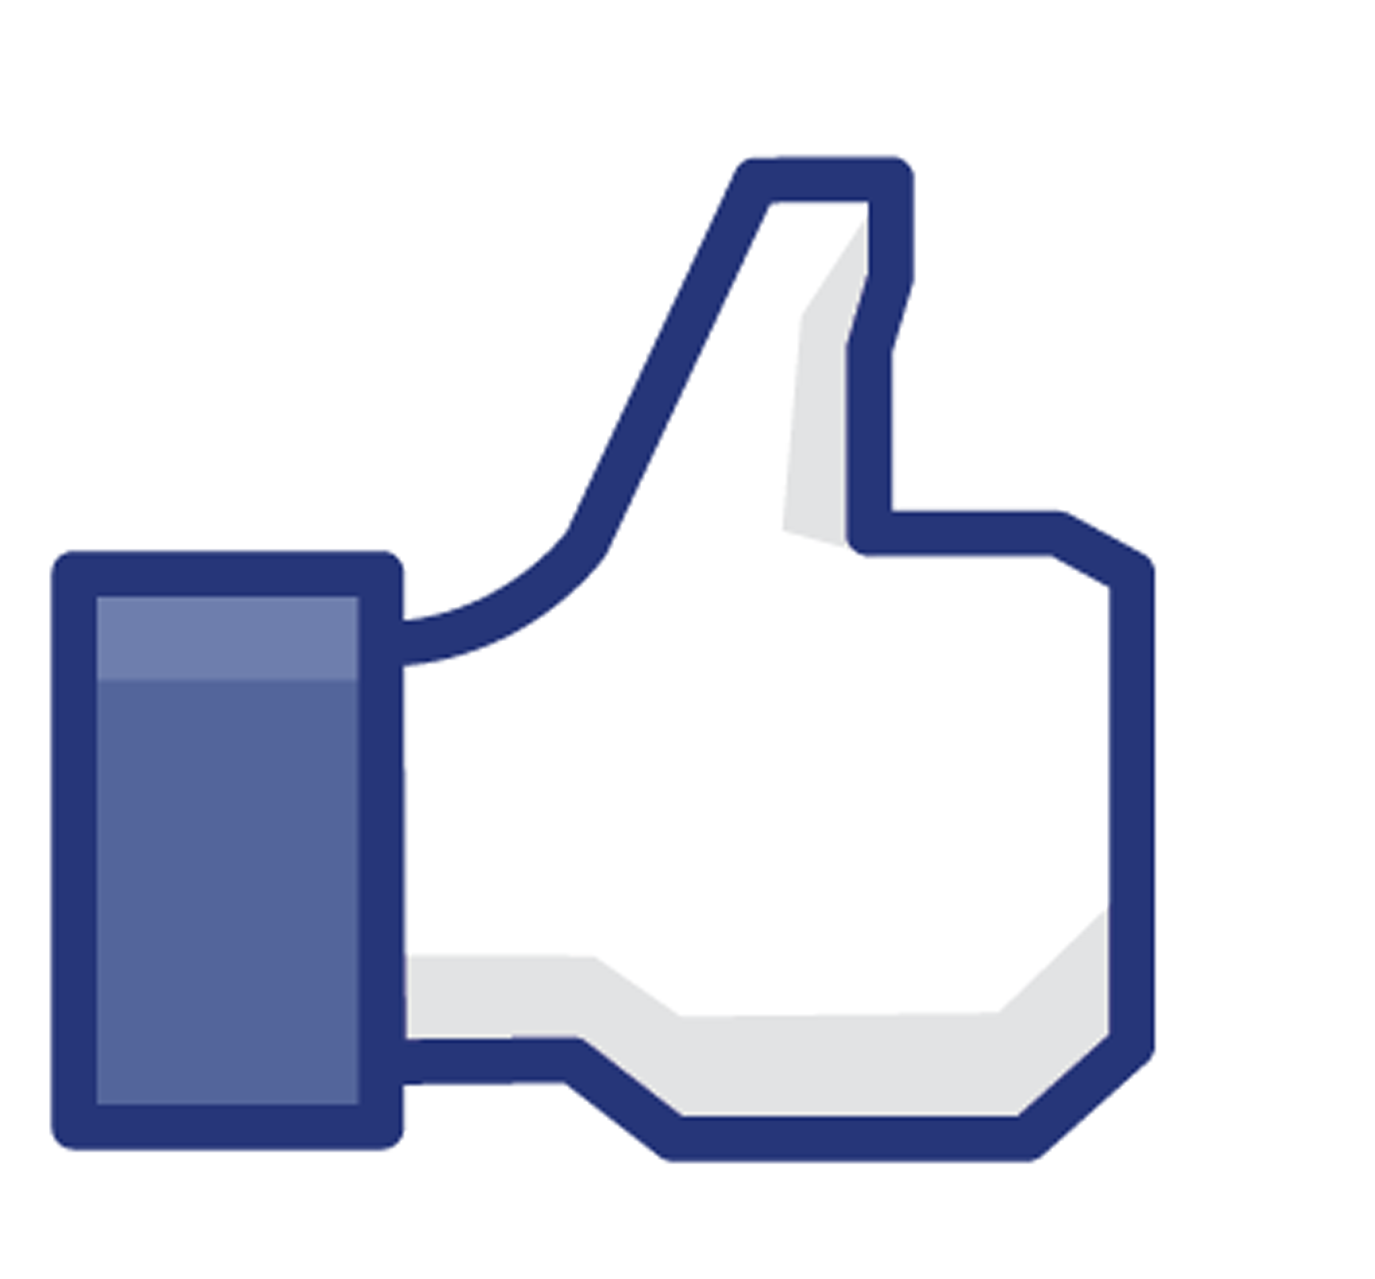 Logo like facebook clipart image #27608.